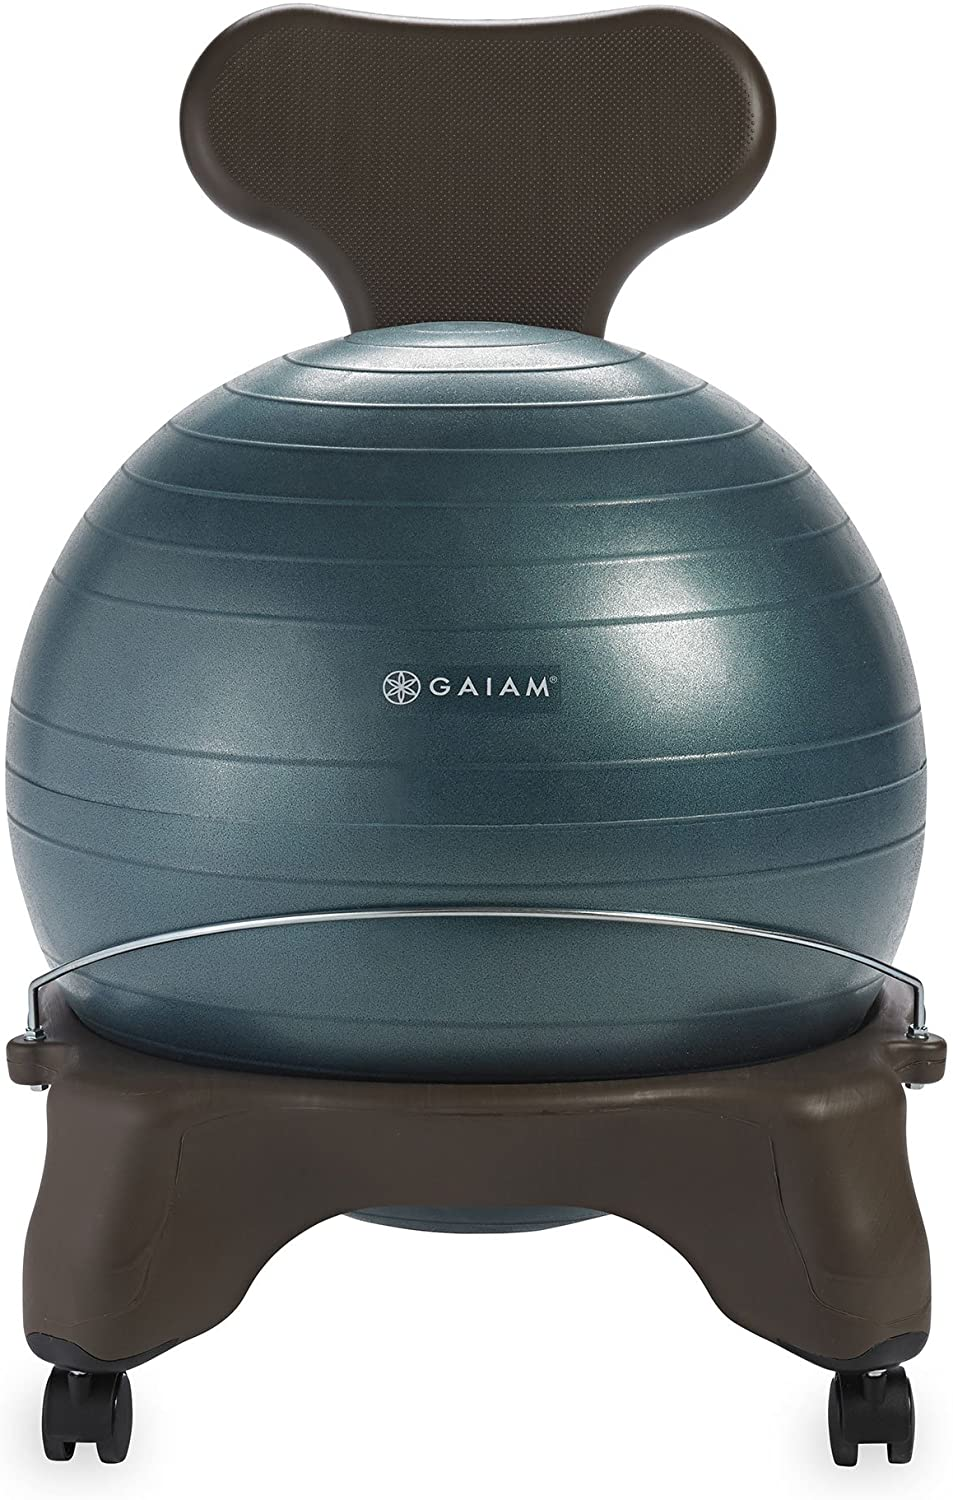 Gaiam Classic Balance Ball Premium Ergonomic Chair